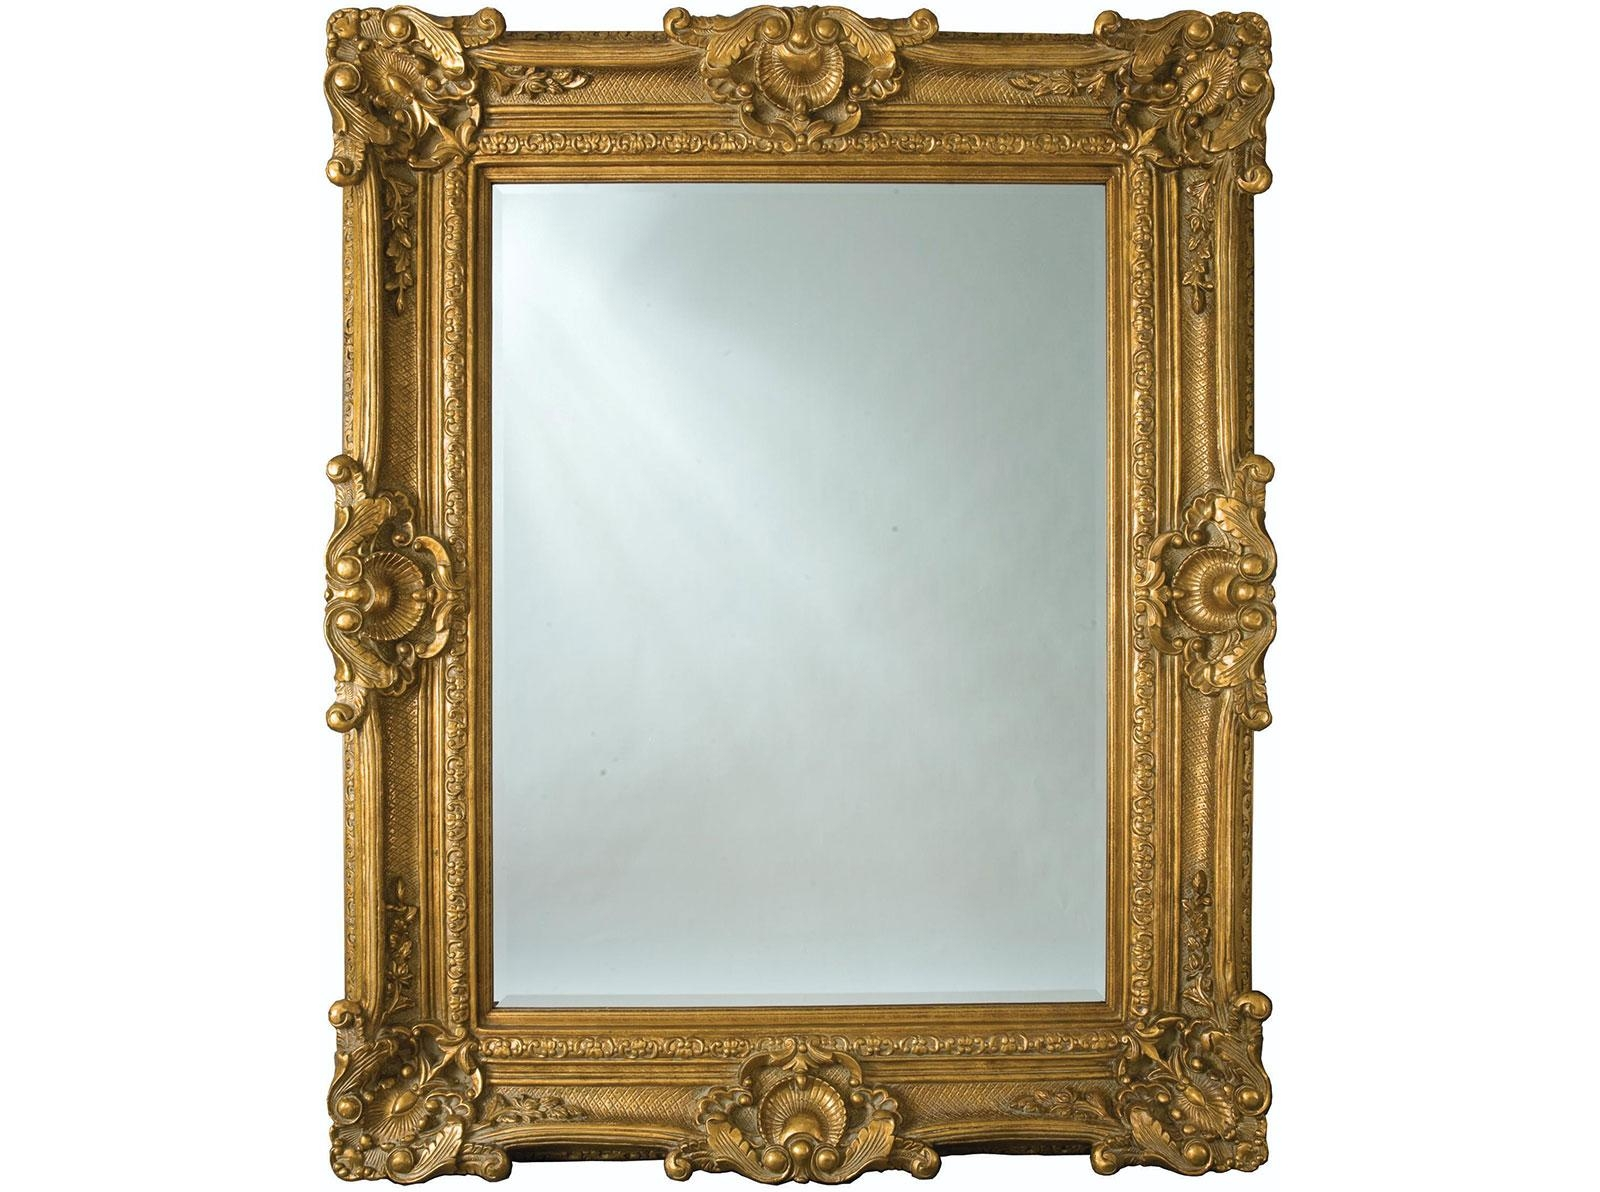 Ornate Mirrors | Bathroom Mirrors | Heritage® Regarding Ornate Bathroom Mirror (Image 16 of 20)